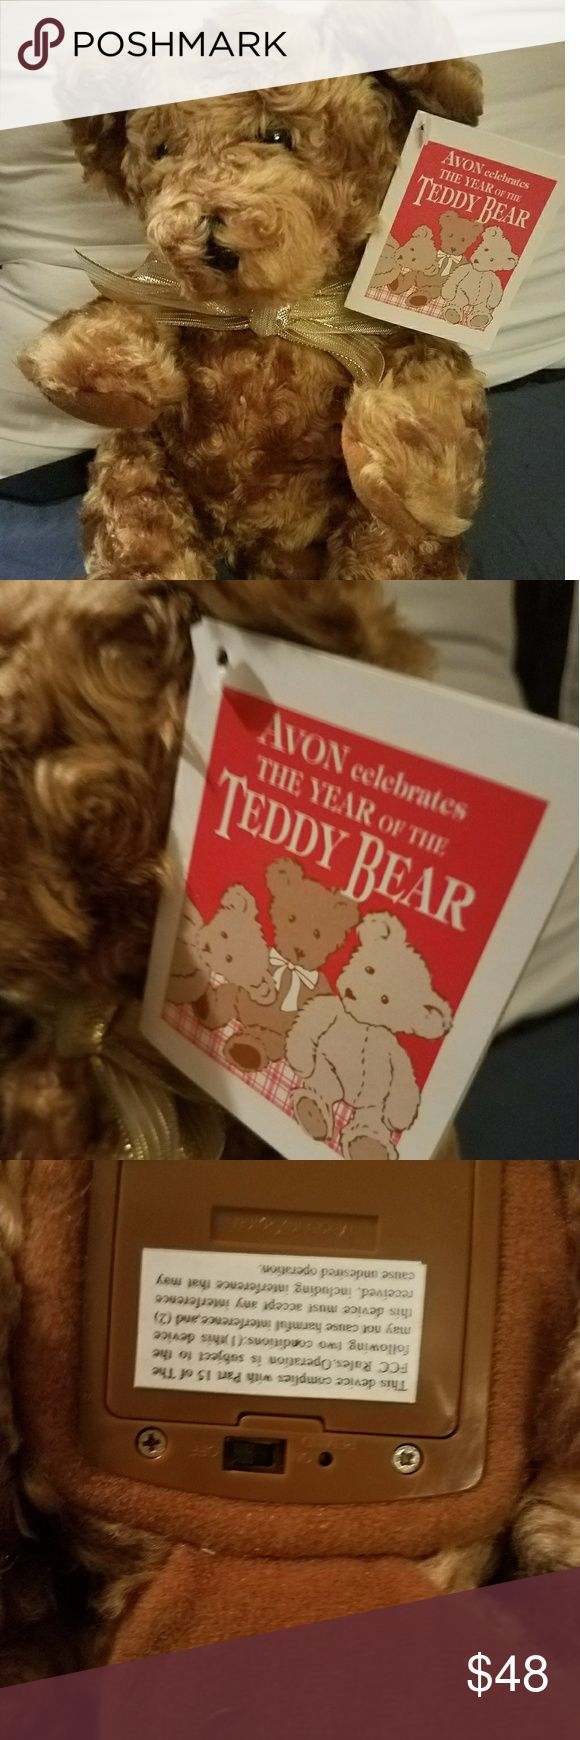 NWT THE YEAR OF THE TEDDY BEAR! Rare Avon the year of the teddy bear talking teddy bear  Collectors pieces  Pristine condition  Smoke free home Avon Other